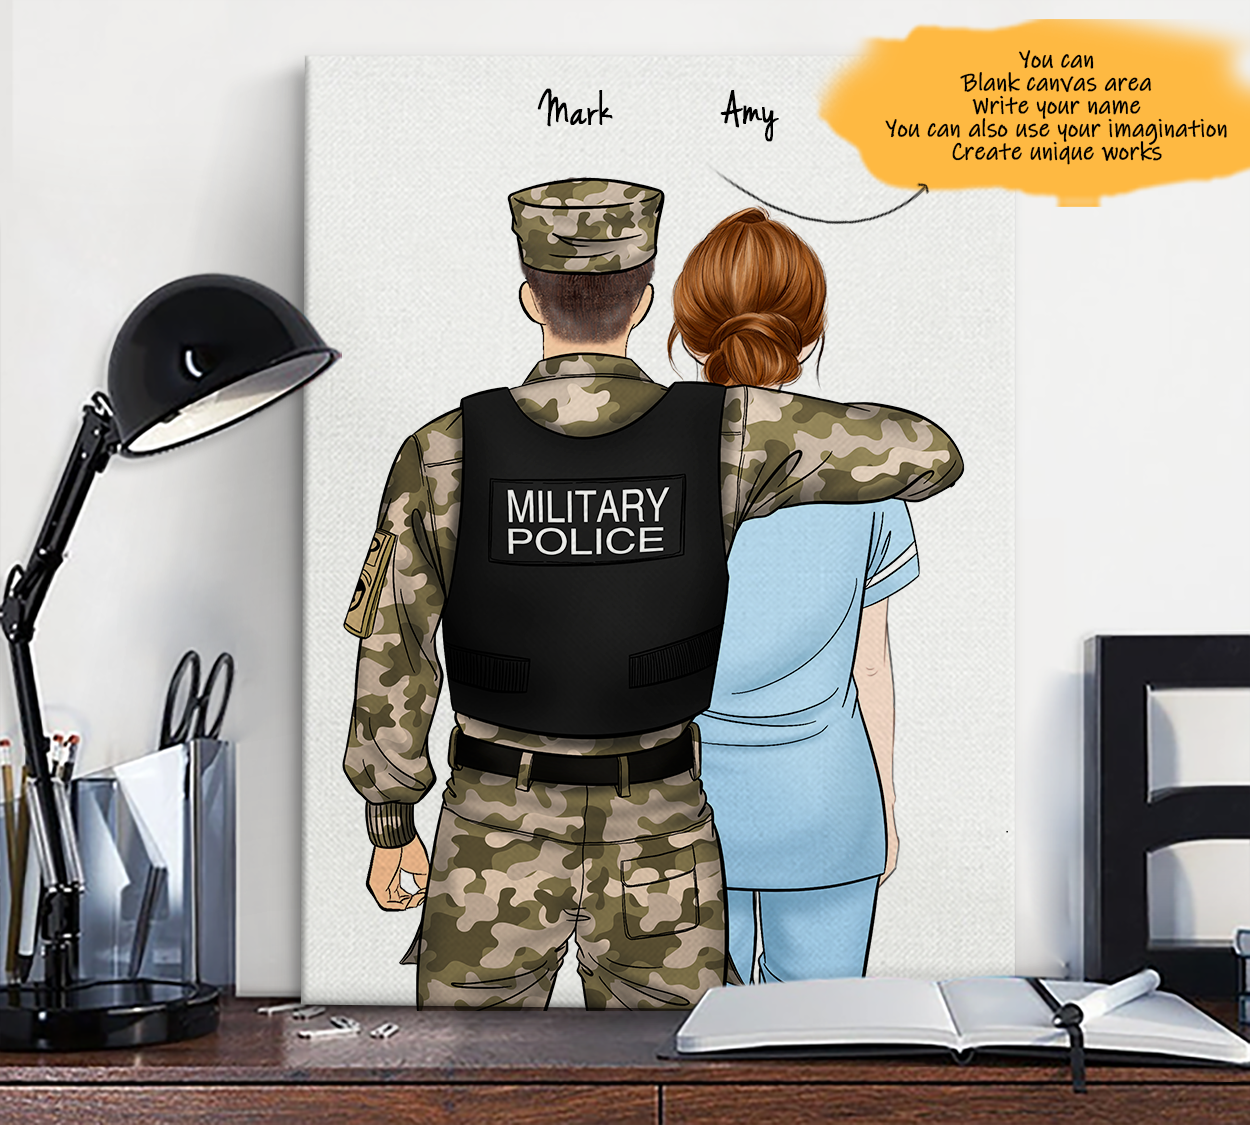 He is My Friend! Hand Draw Custom Canvas-Print Gift Military Police US-Light&Paramedic